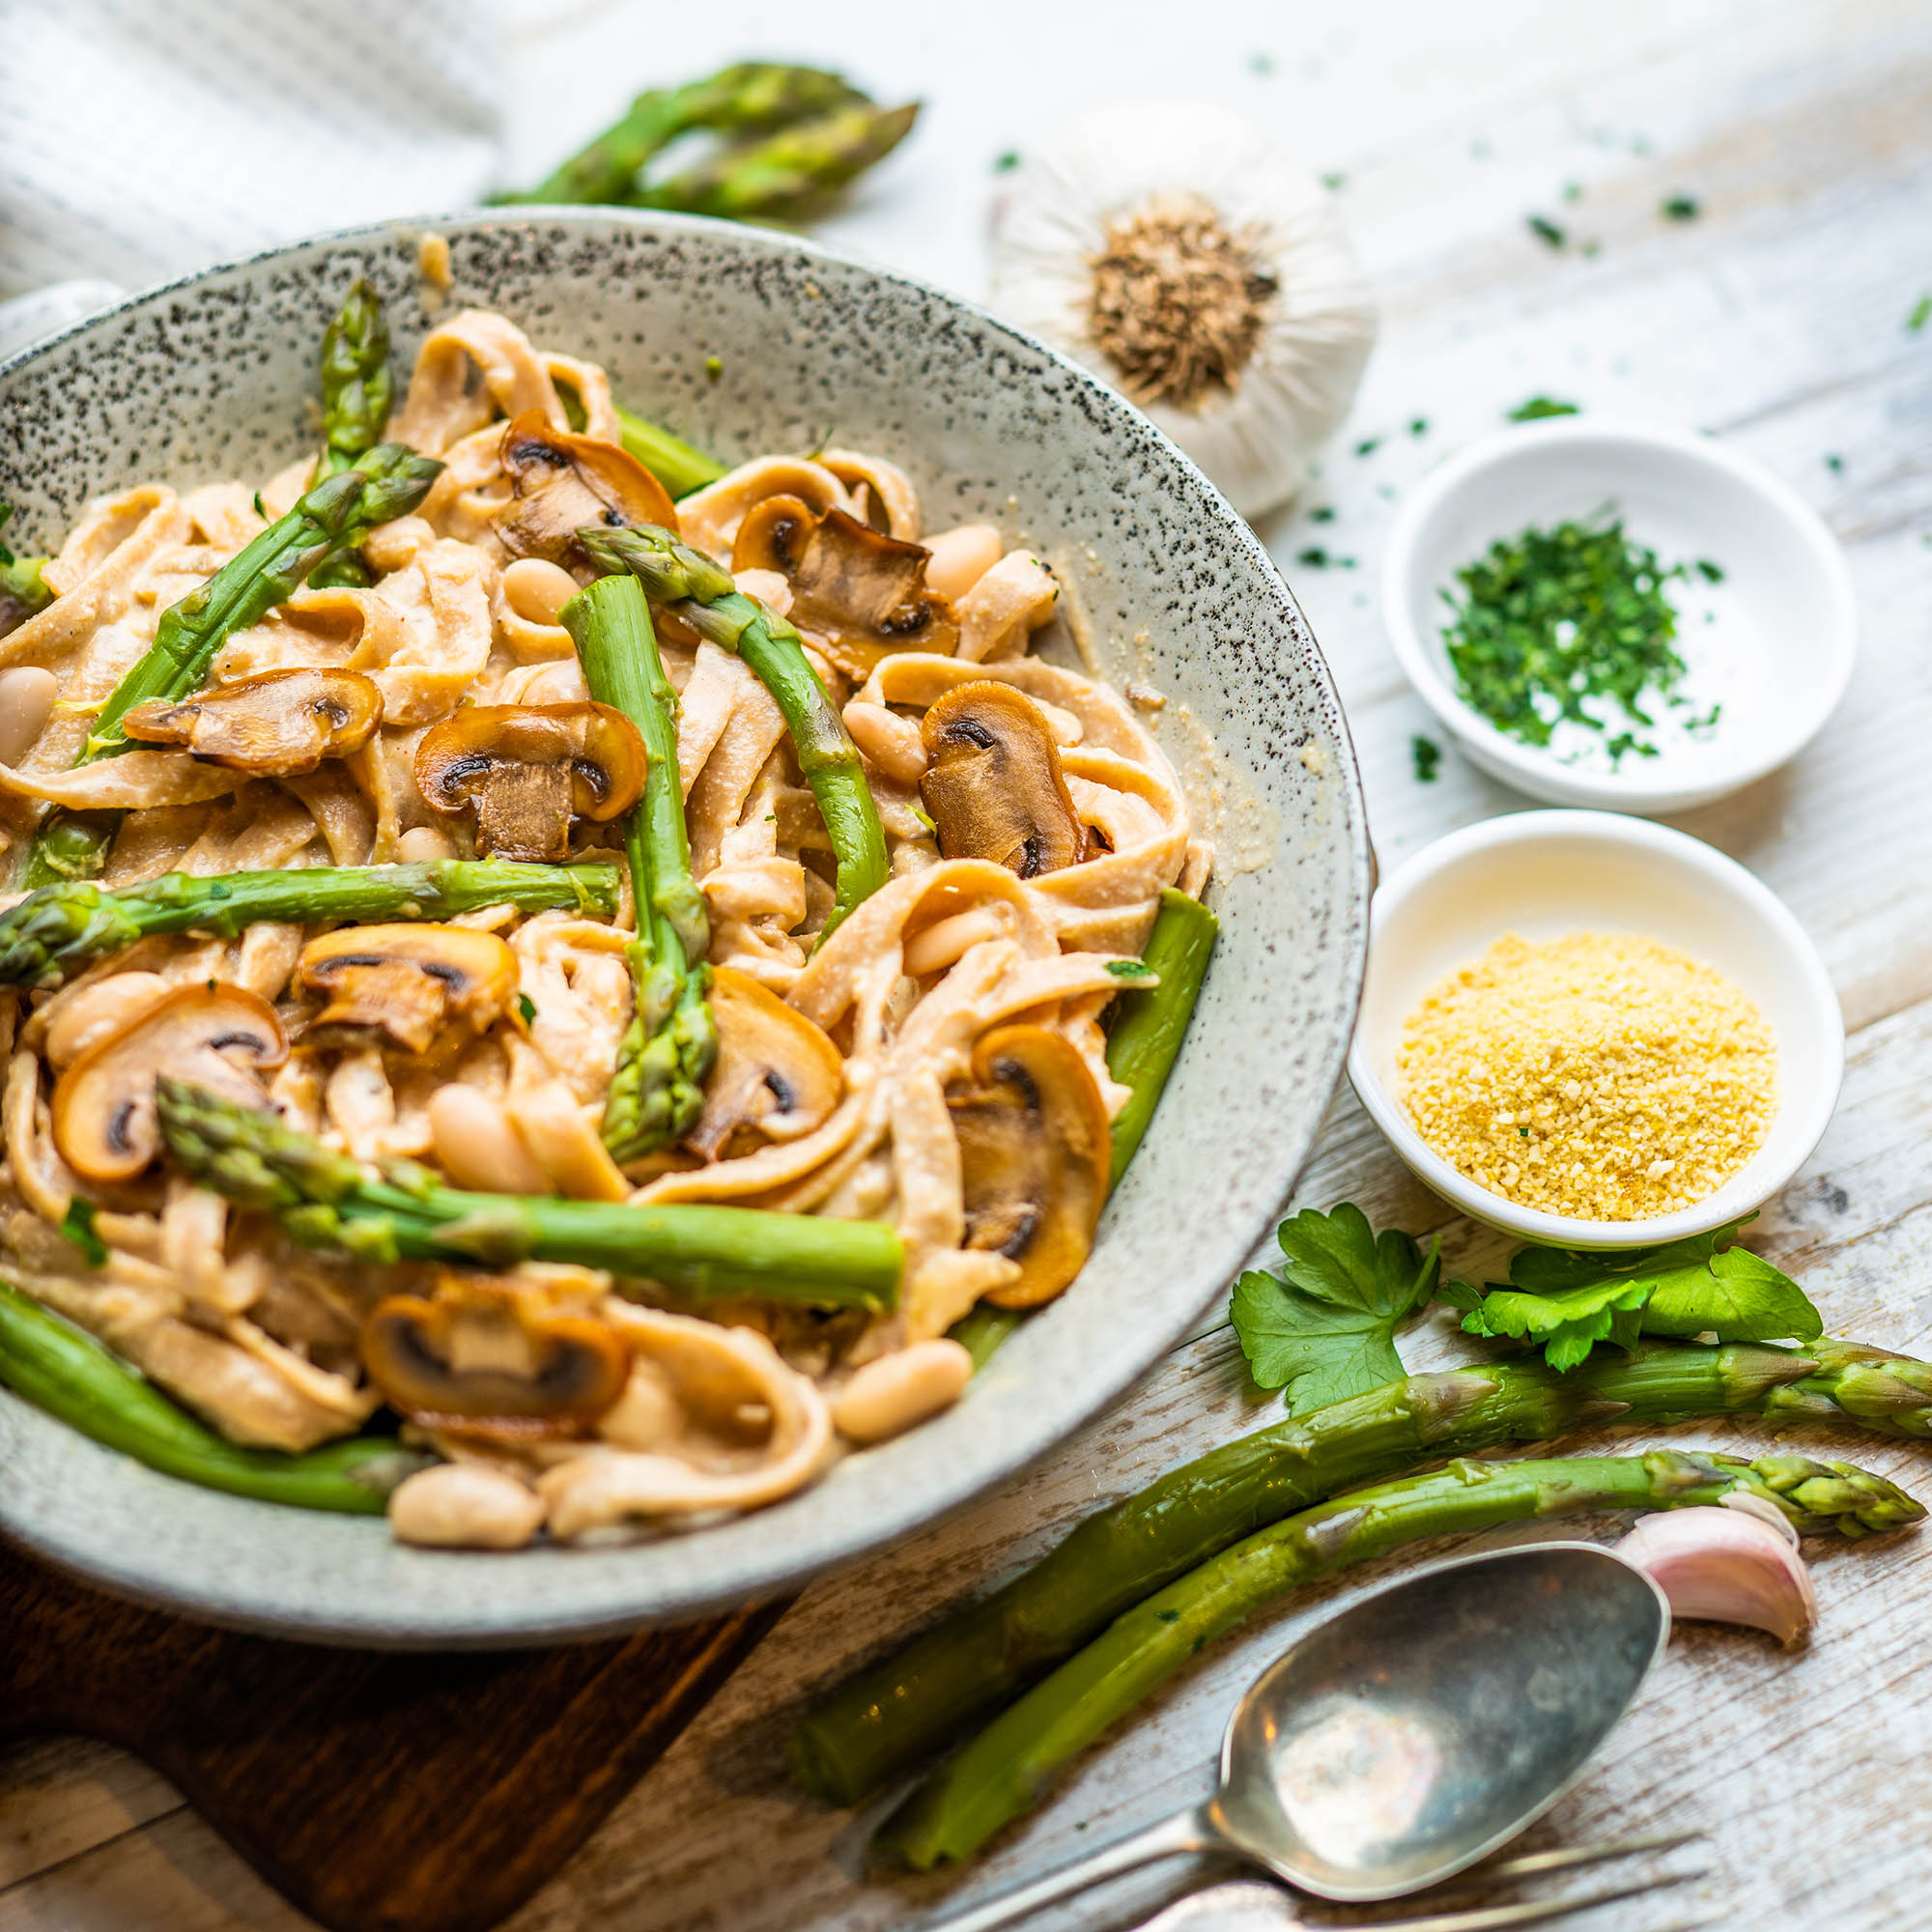 Creamy Vegan Mushroom Pasta with Steamed Greens and White Beans